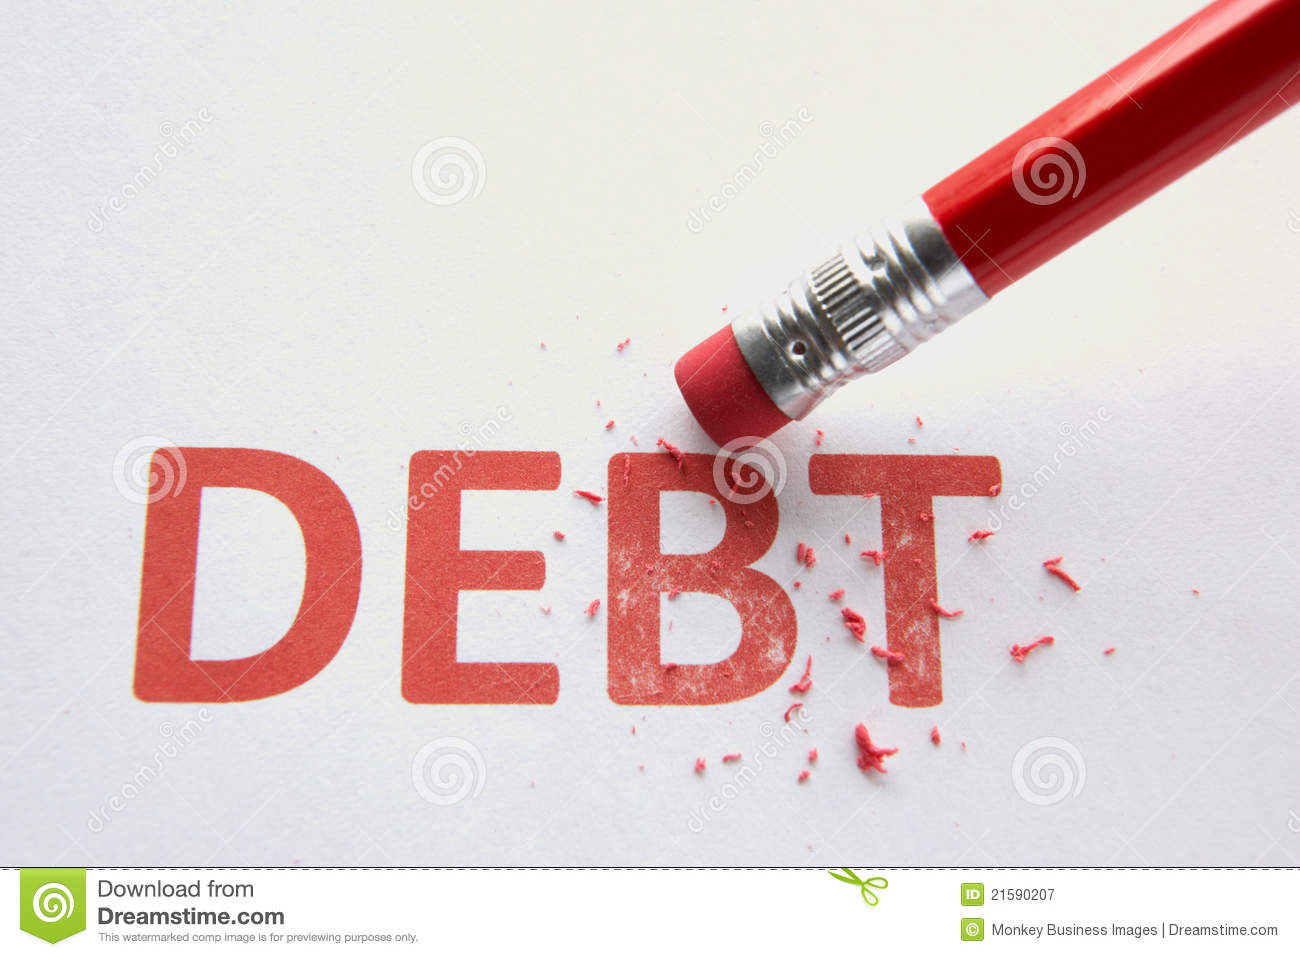 wipe out credit card debt: